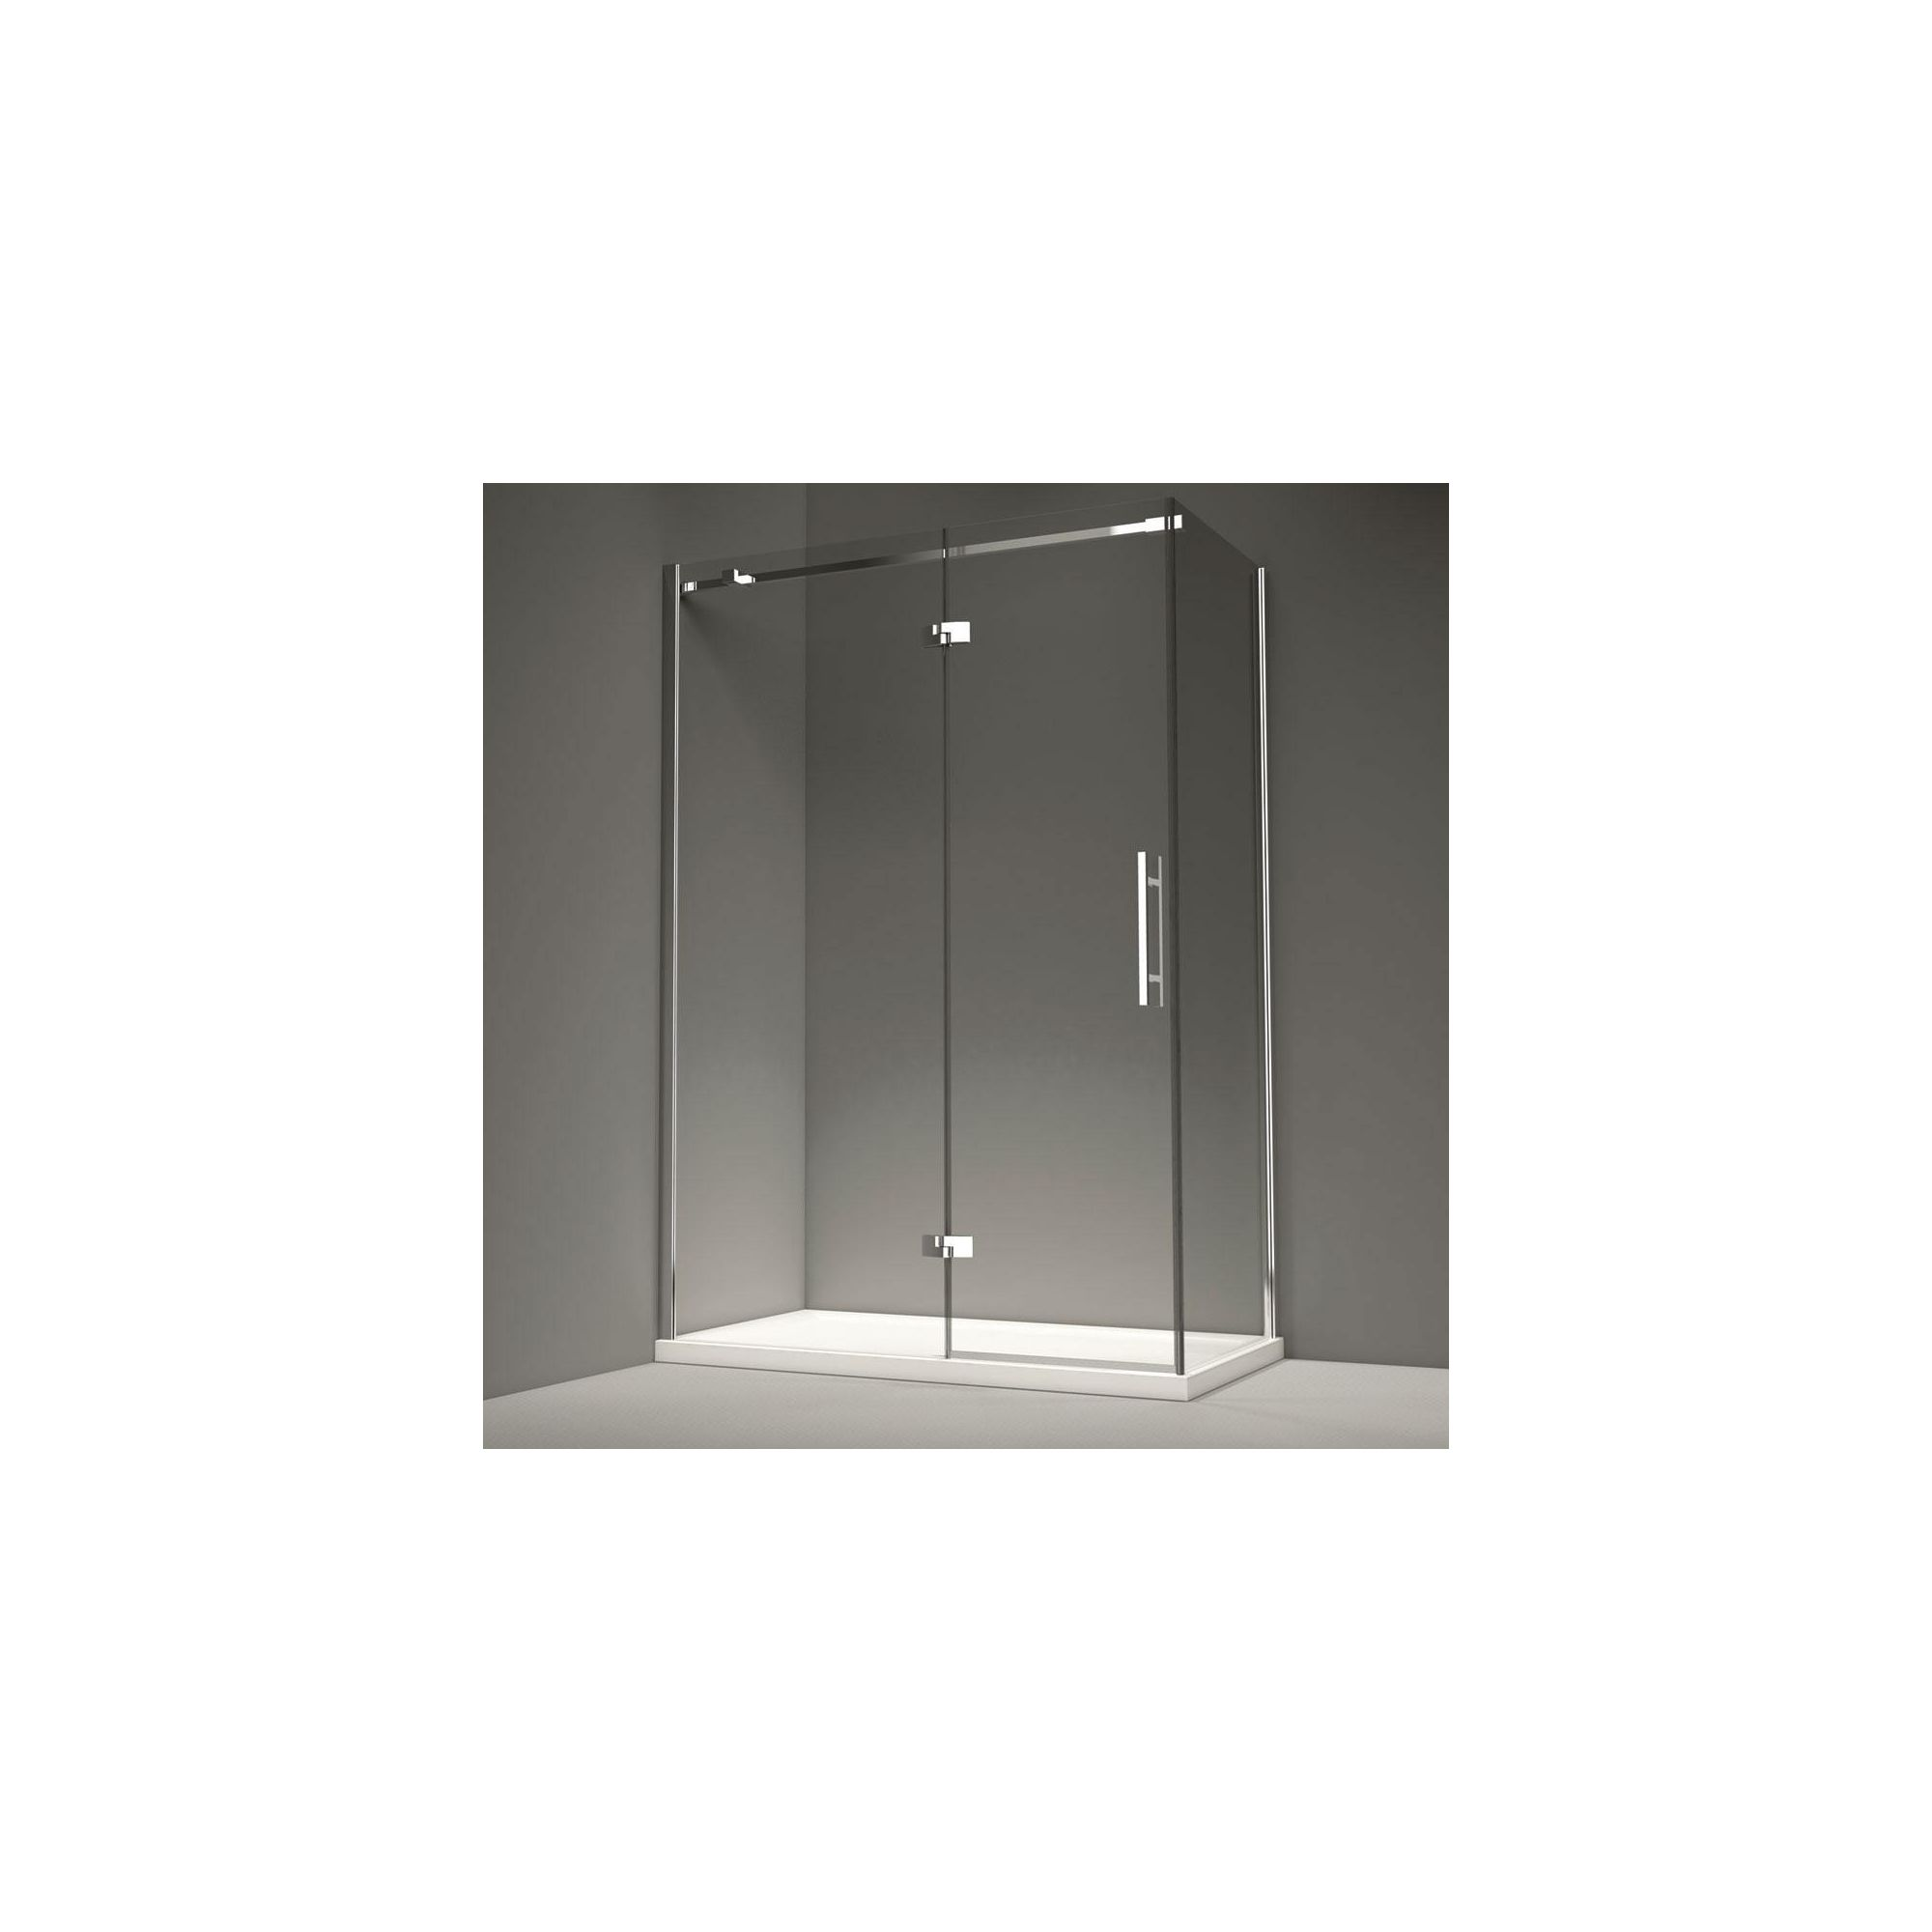 Merlyn Series 9 Inline Hinged Shower Door, 1700mm Wide, 8mm Glass, Left Handed at Tesco Direct